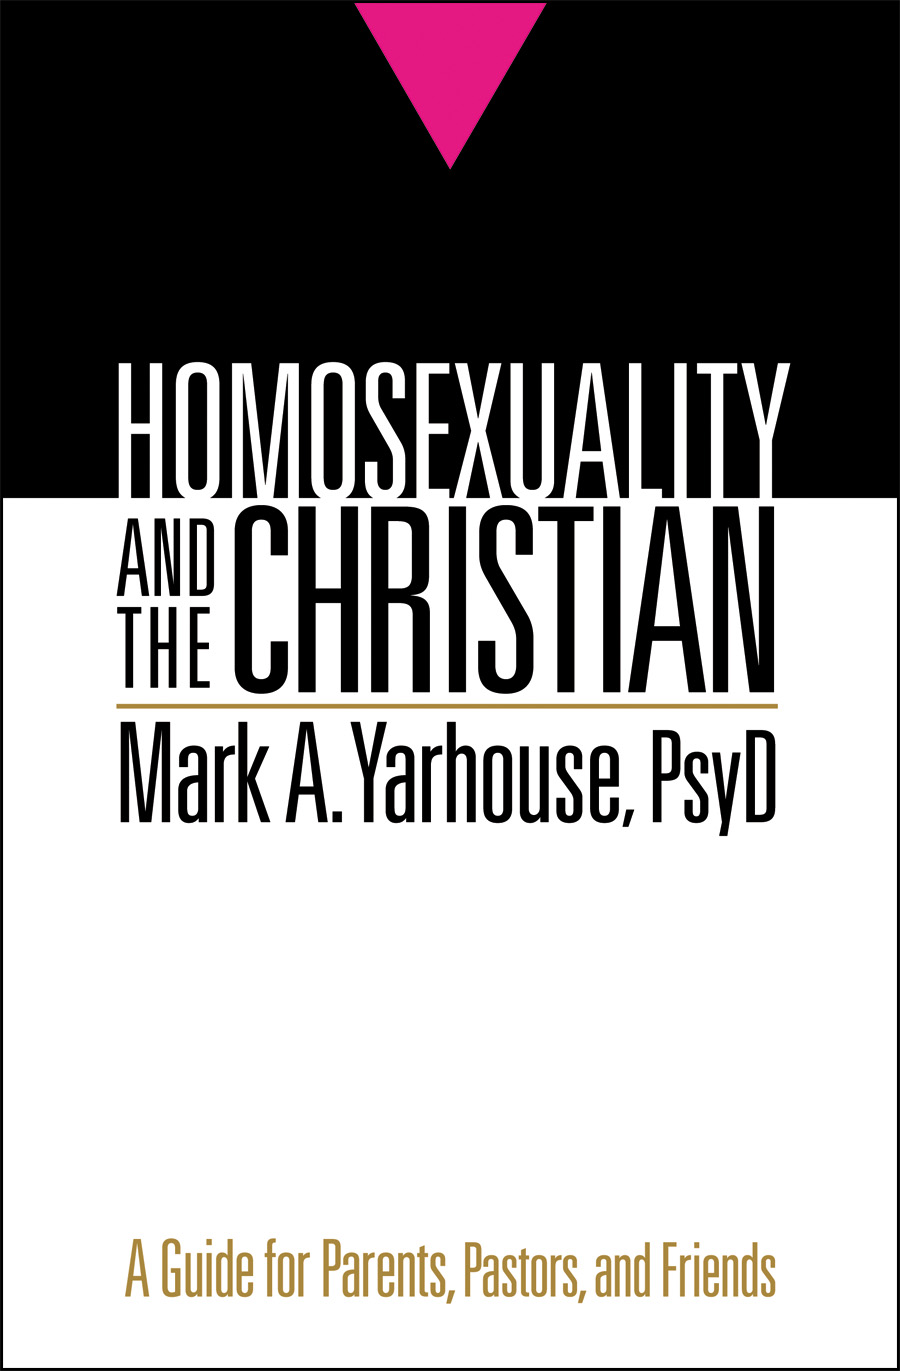 ... Christians struggling with same-sex attraction often suffer silently.